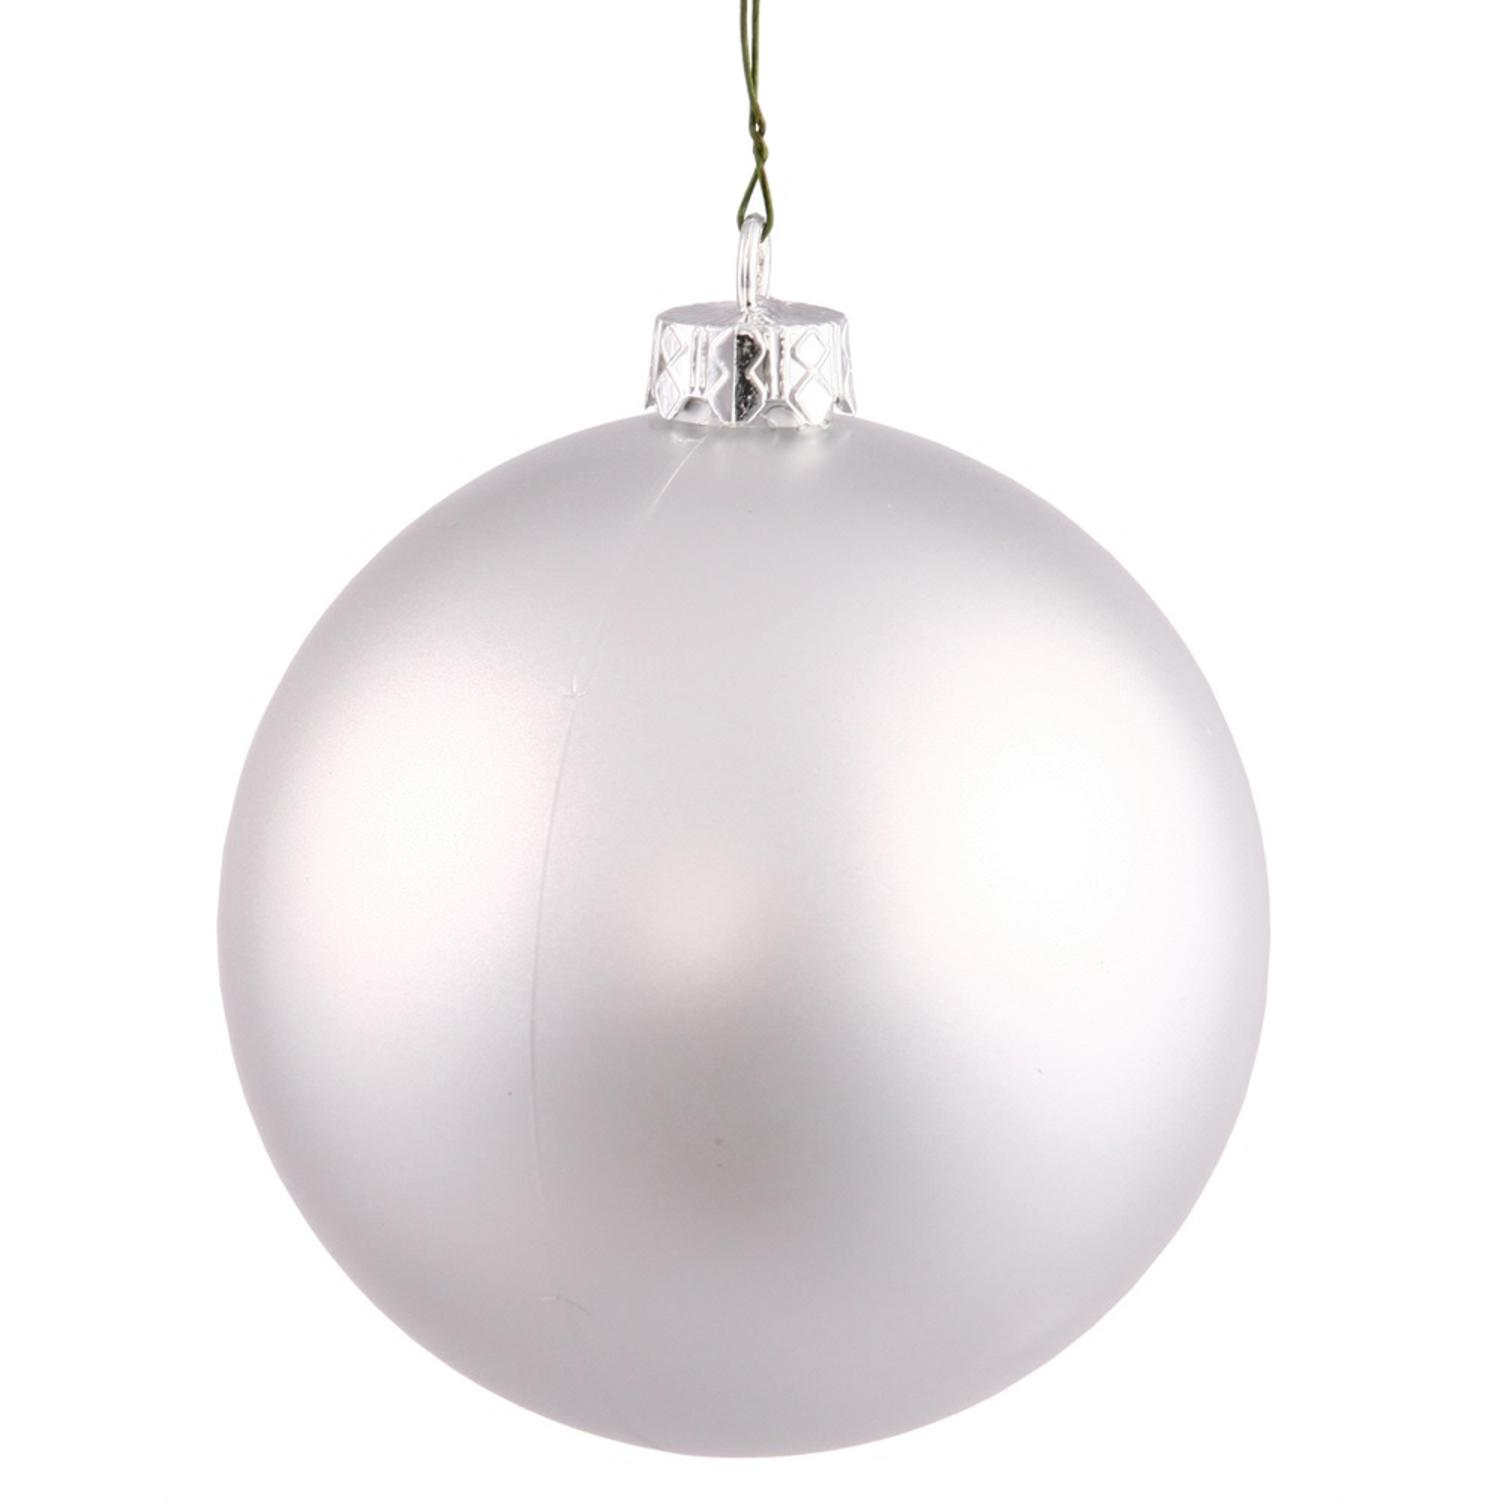 Decorative Christmas Ball Ornaments: Vickerman Matte Silver Shatterproof Christmas Ball